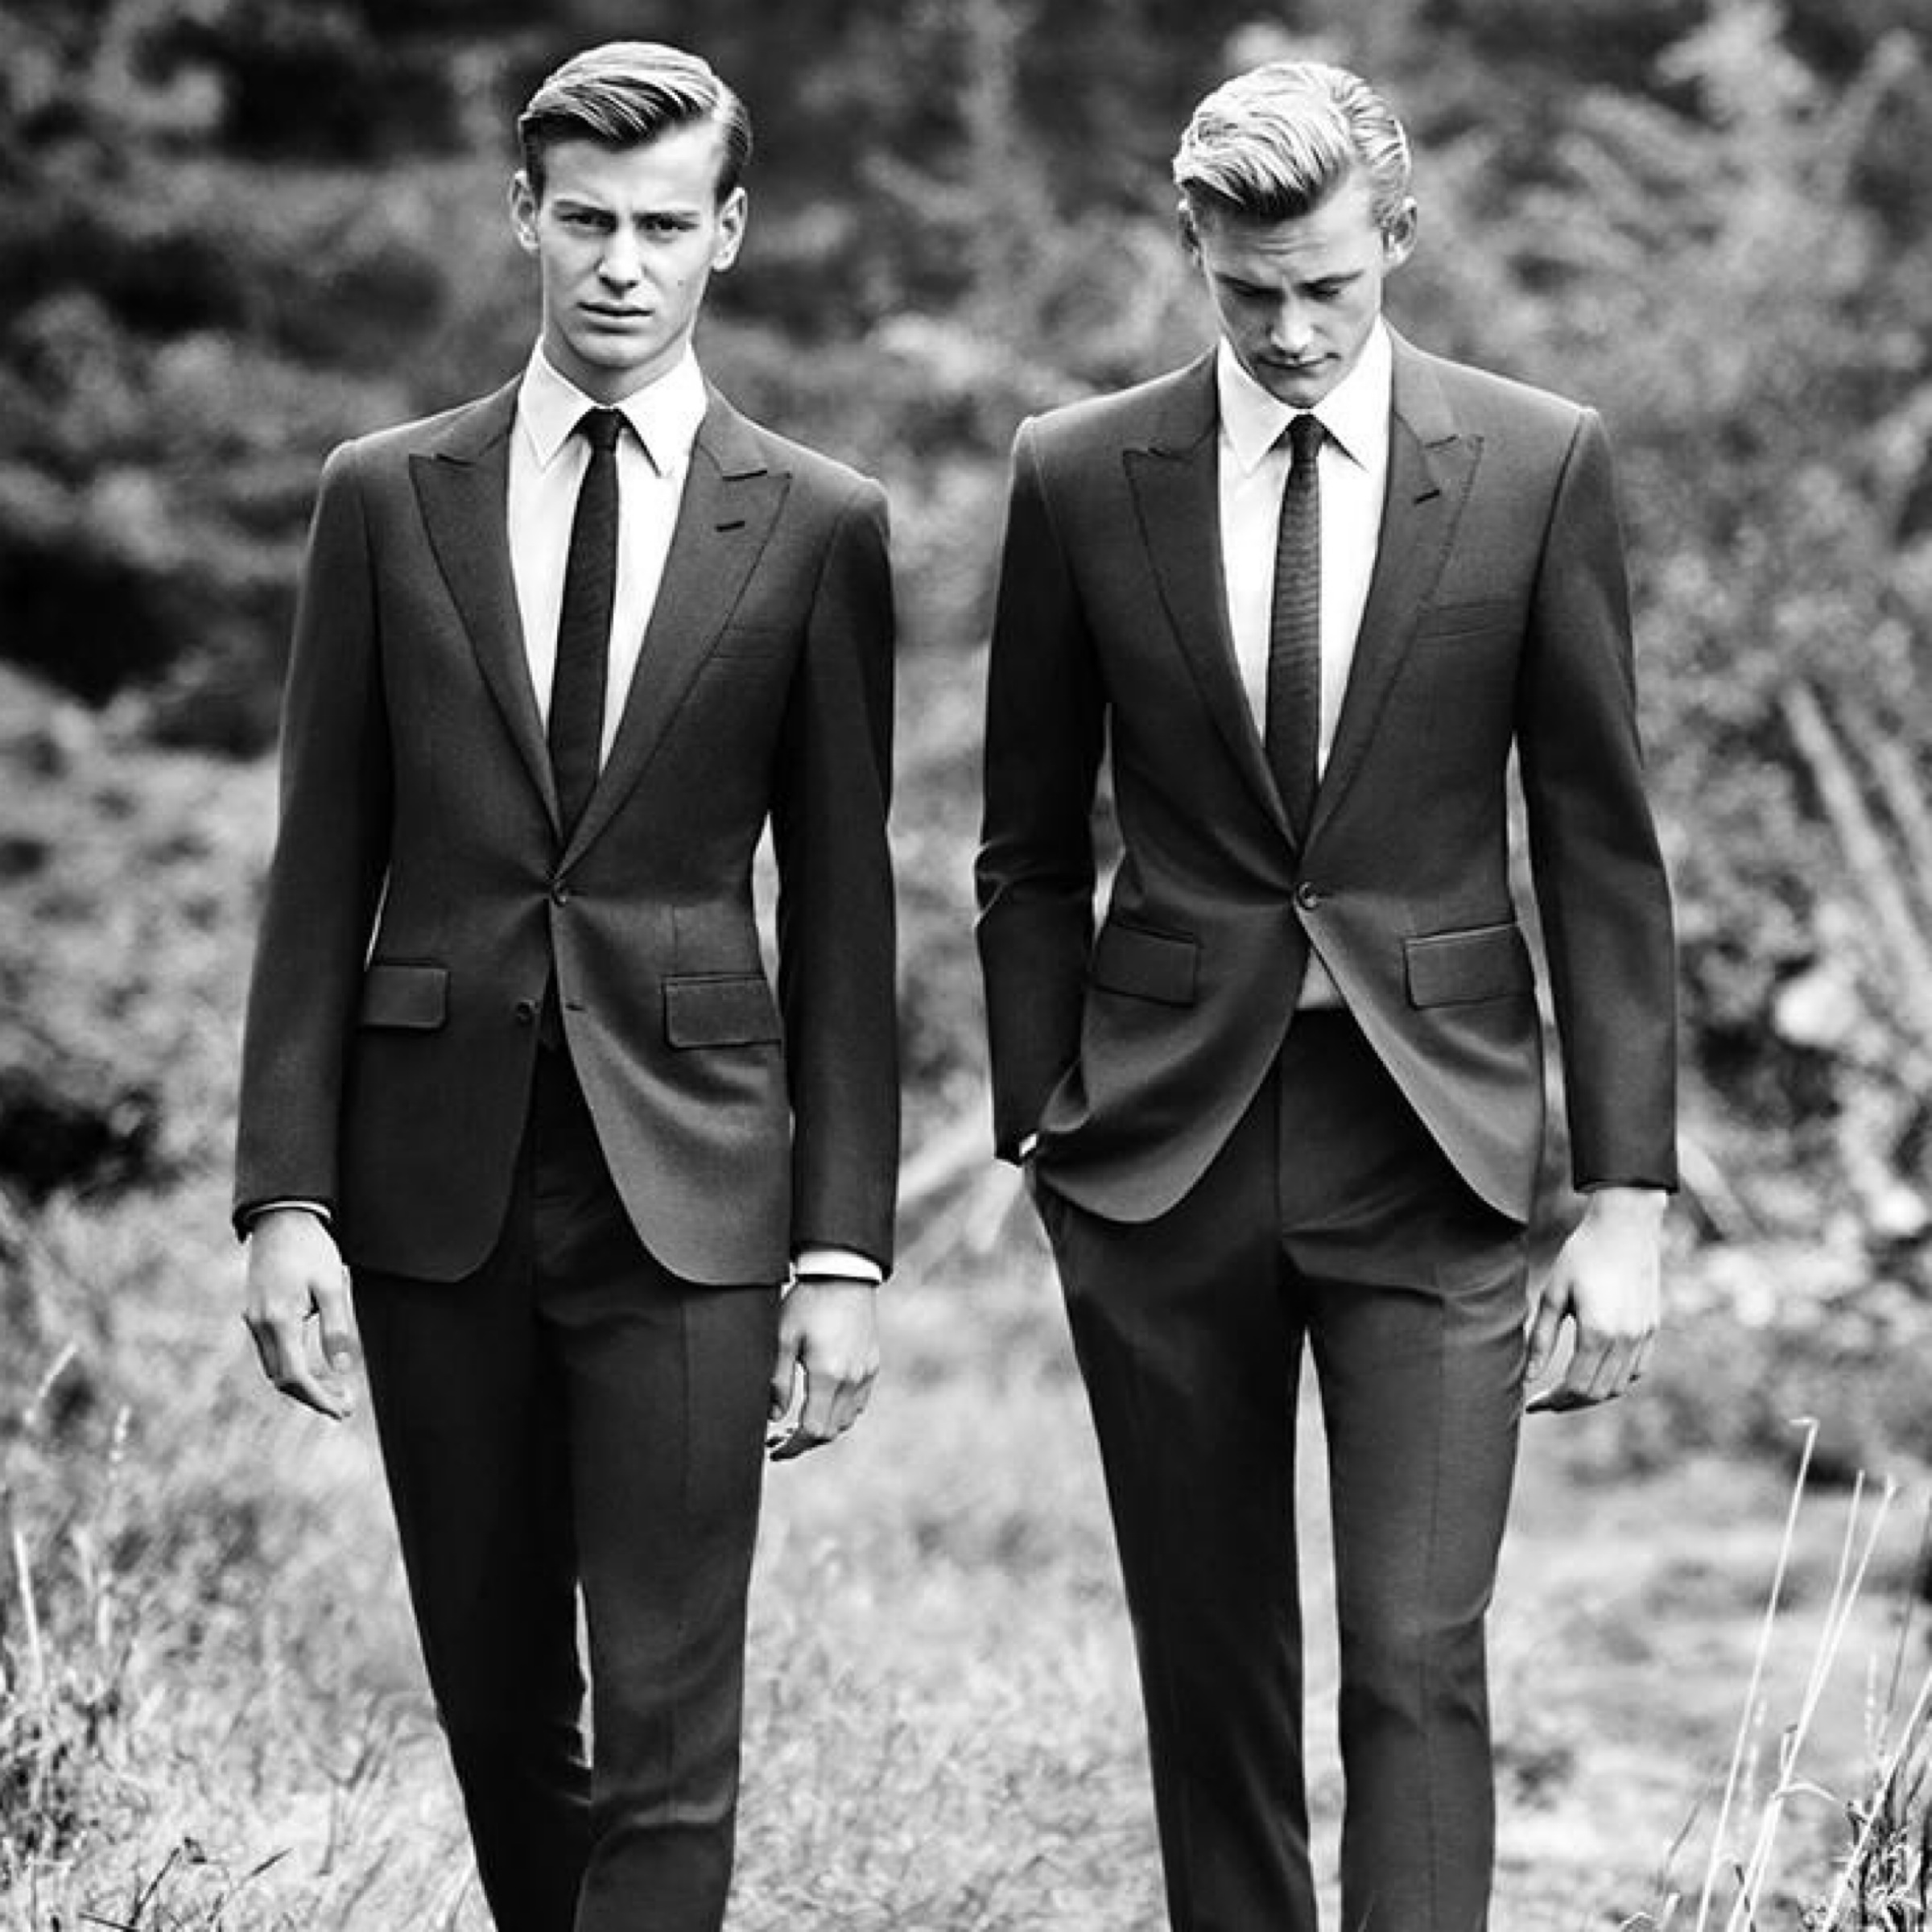 #1 (147 likes) Ben Allen & Kye D'Arcy for Hardy Amies Spring Summer 2013 Campaign